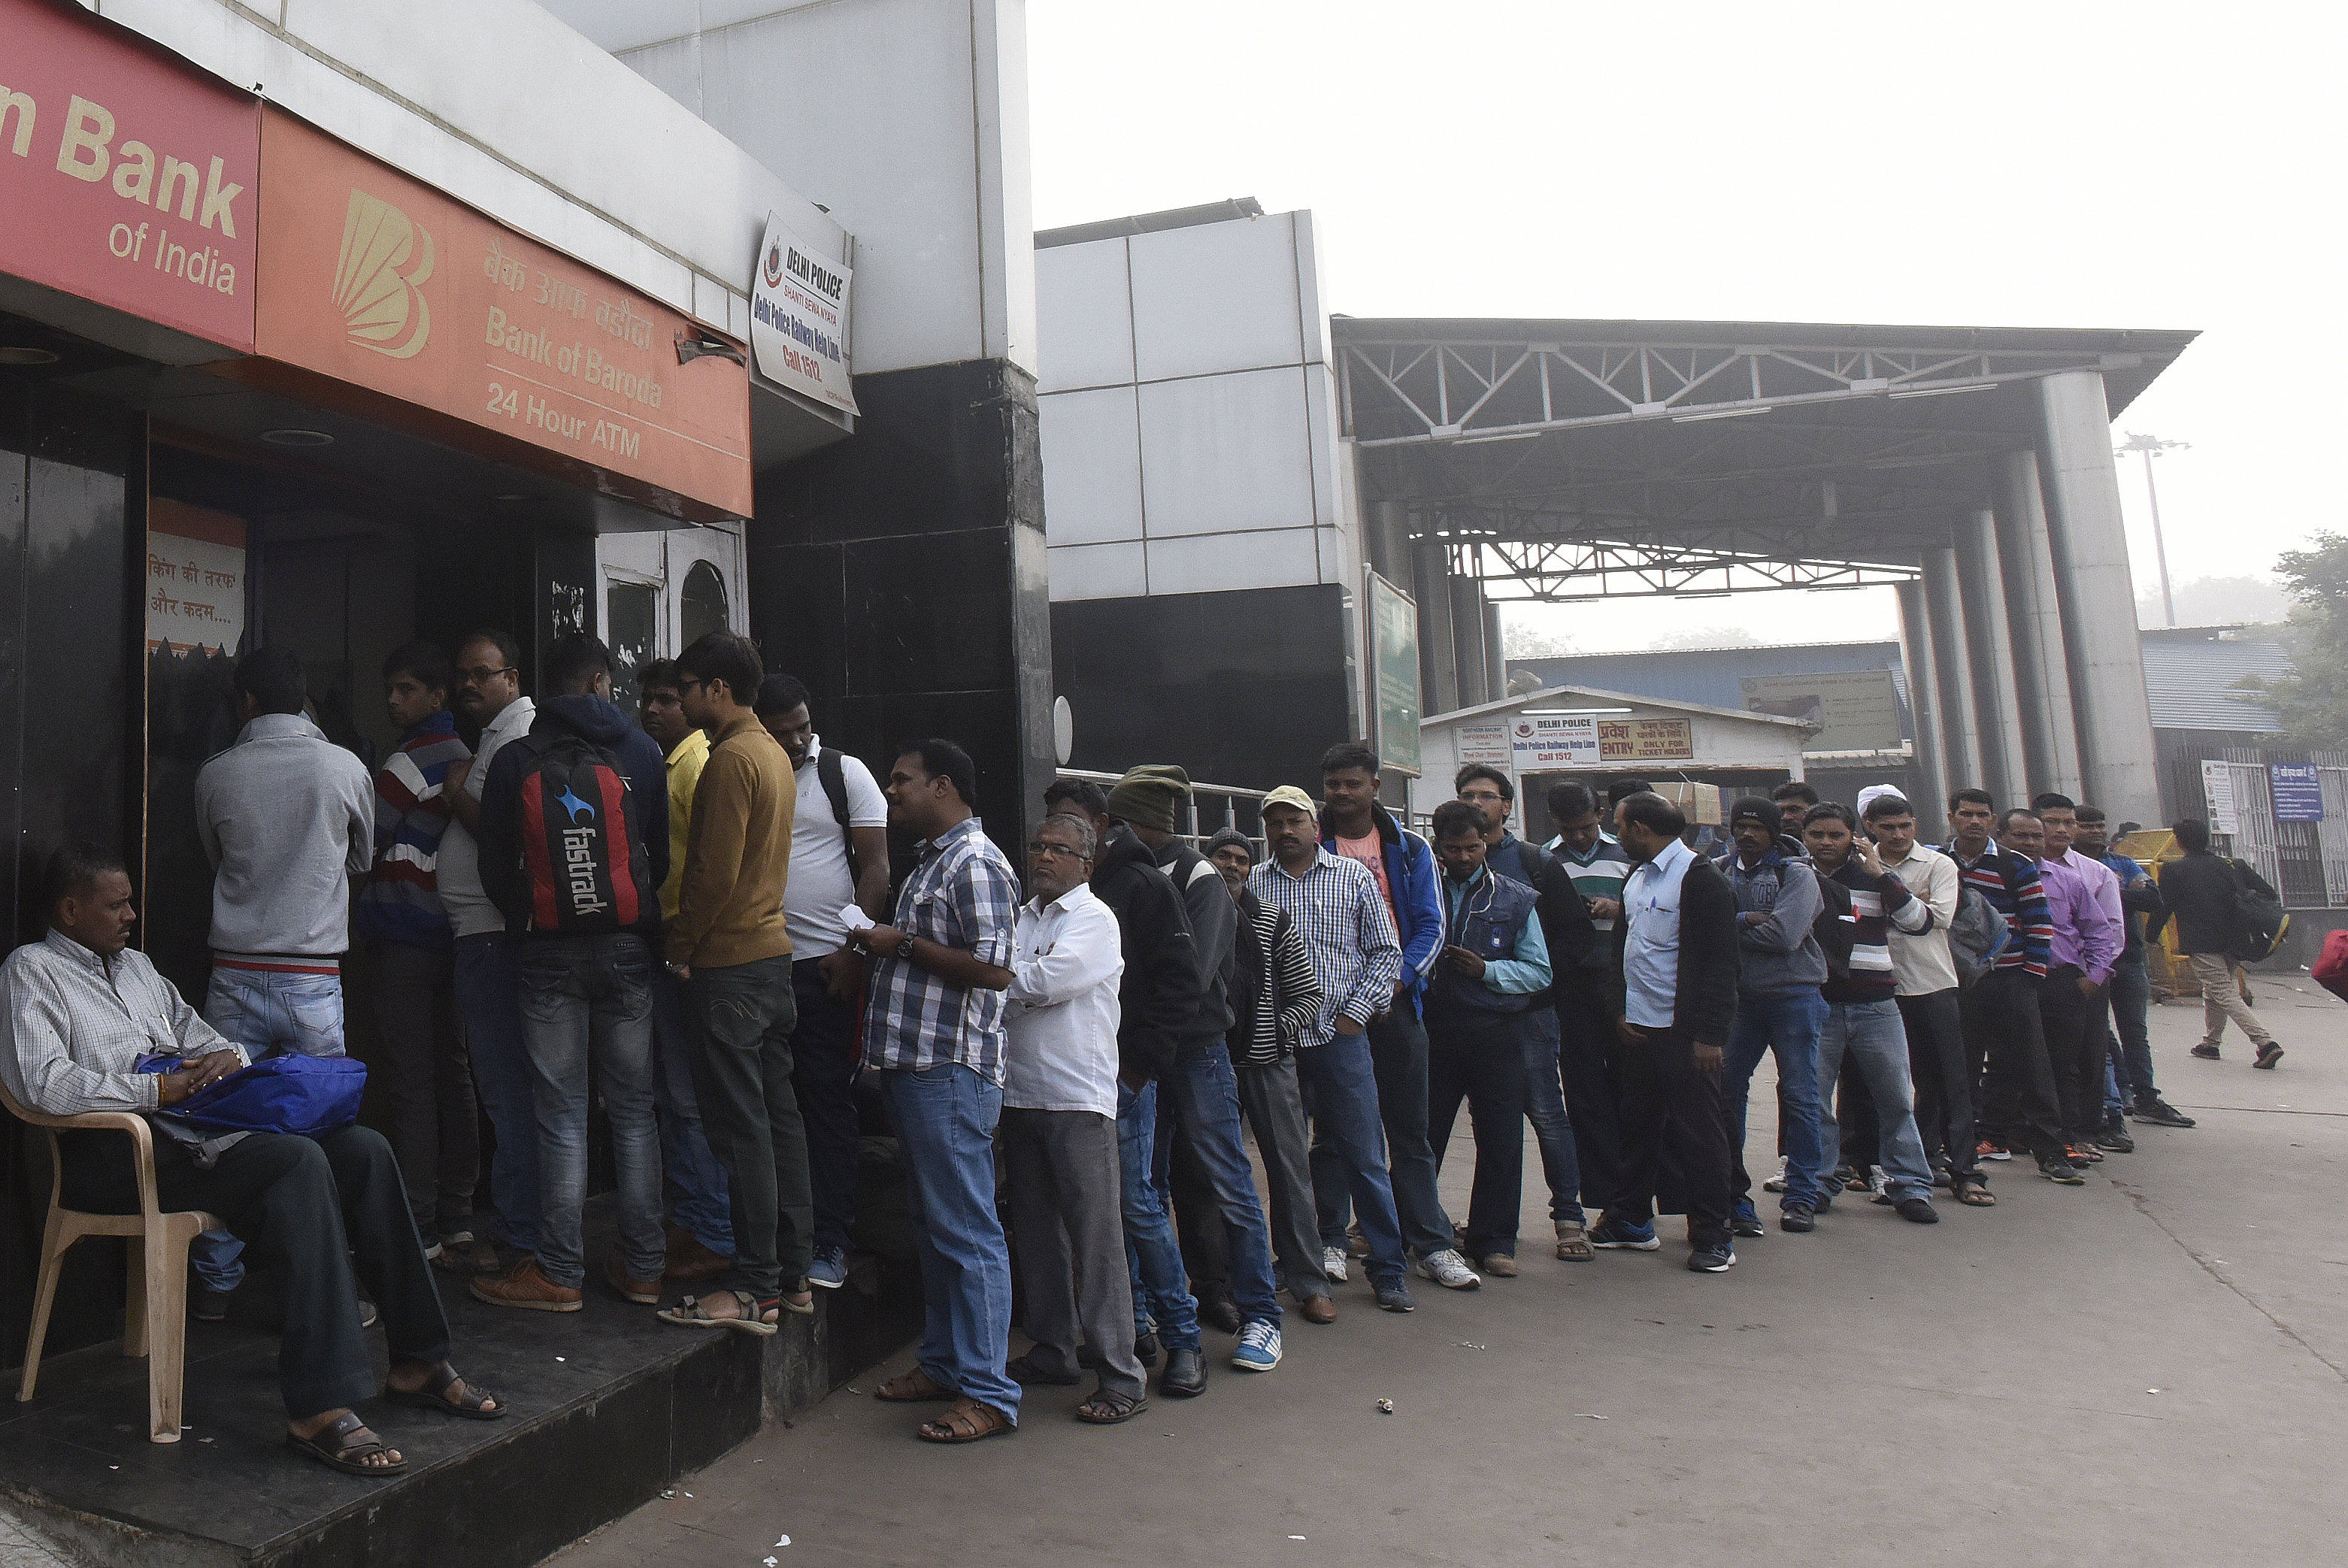 Demonetization: Long Queues To Withdraw Cash From ATMs And Banks